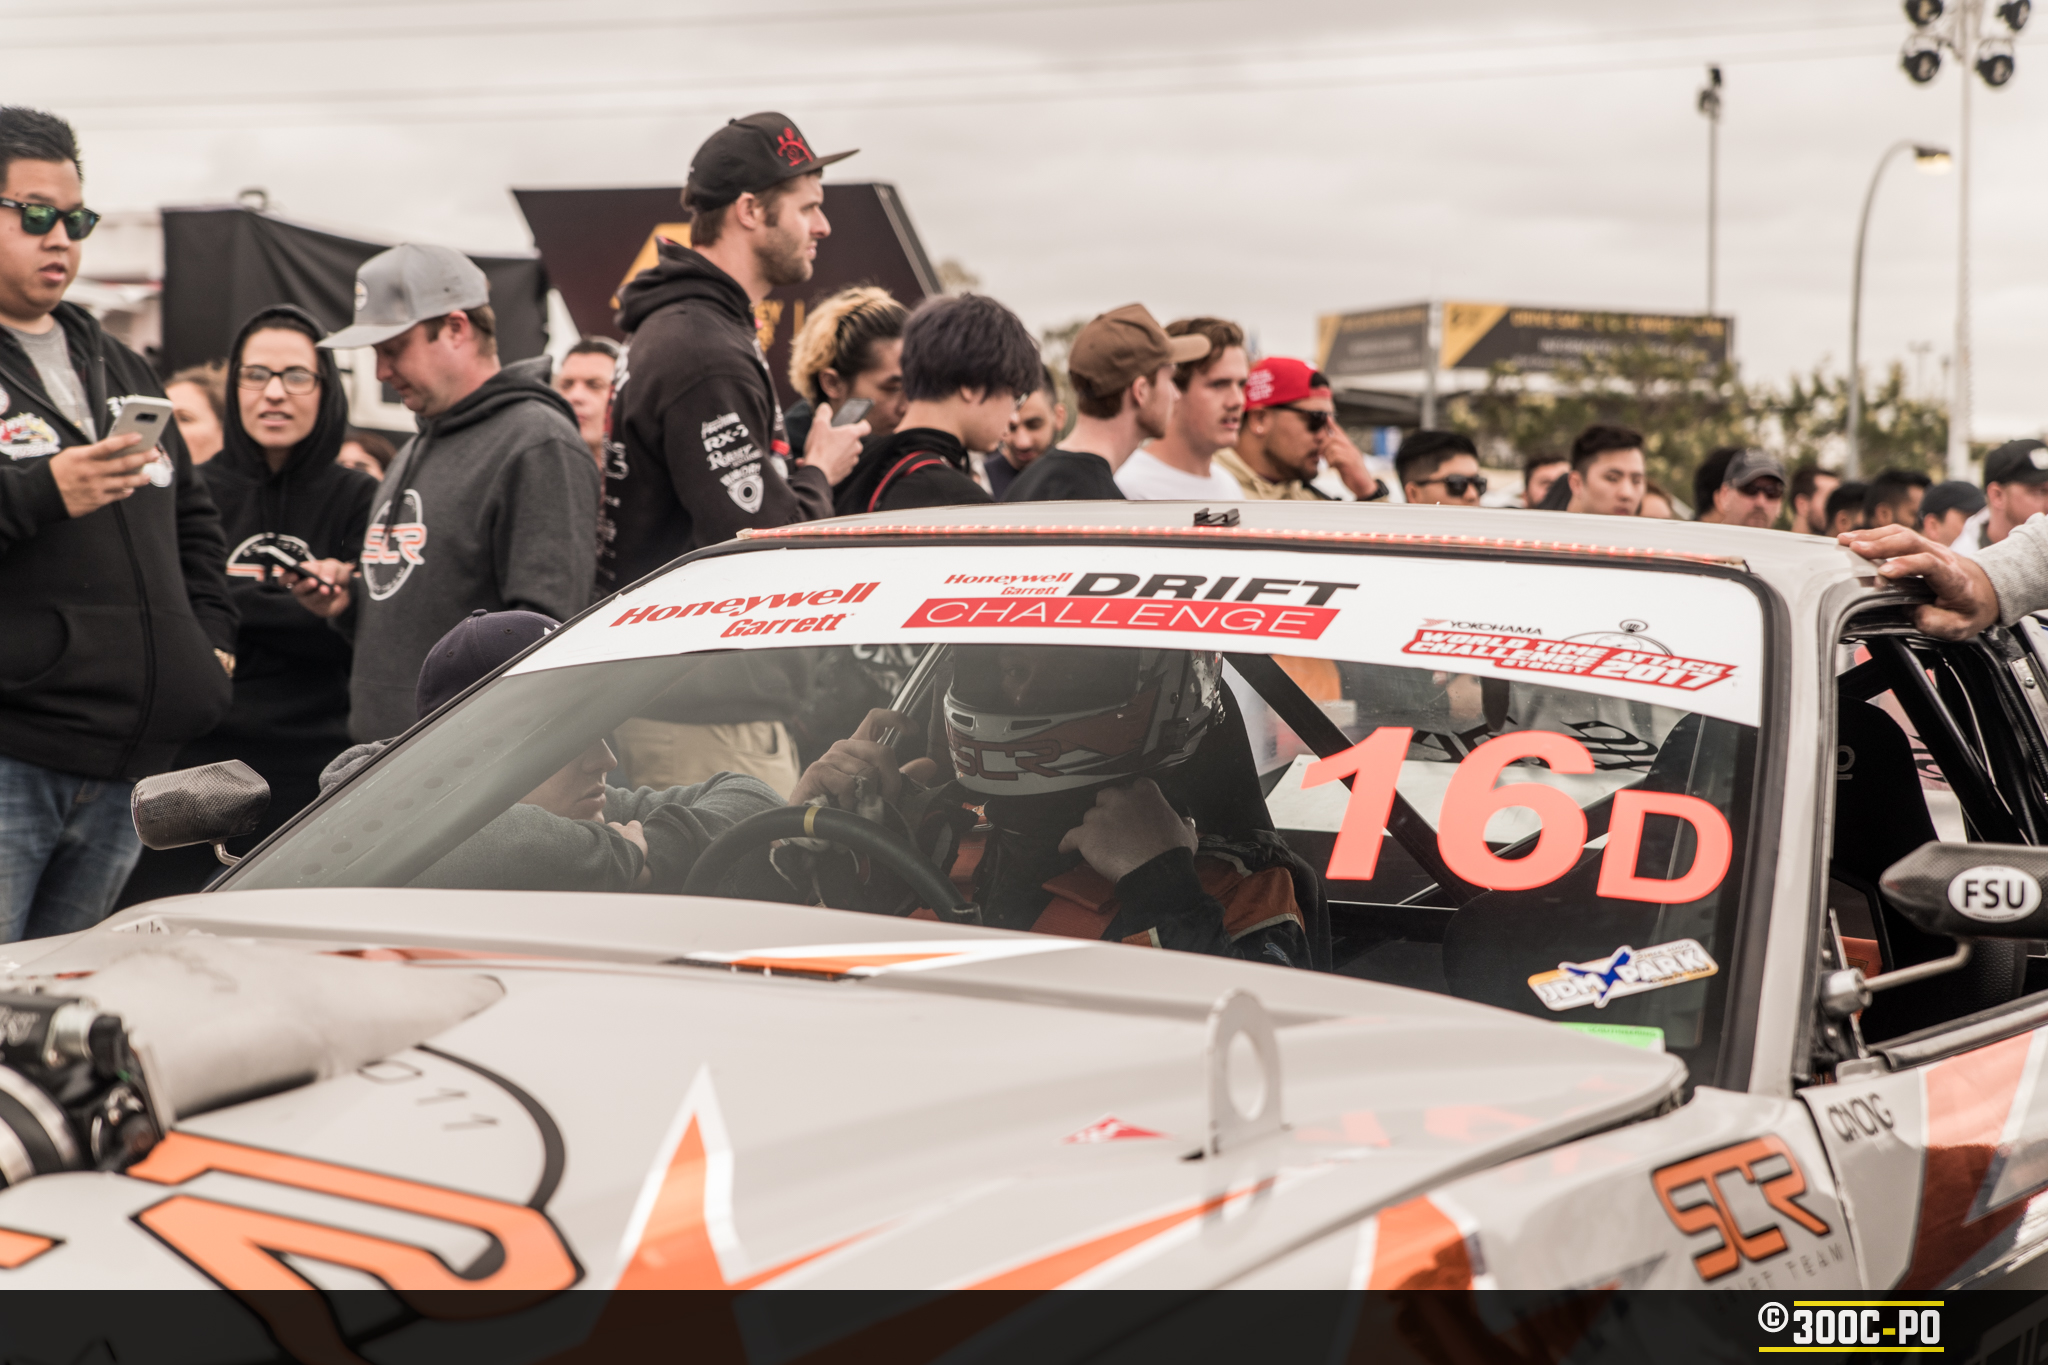 2017-10-14 - WTAC 2017 Day 02 210